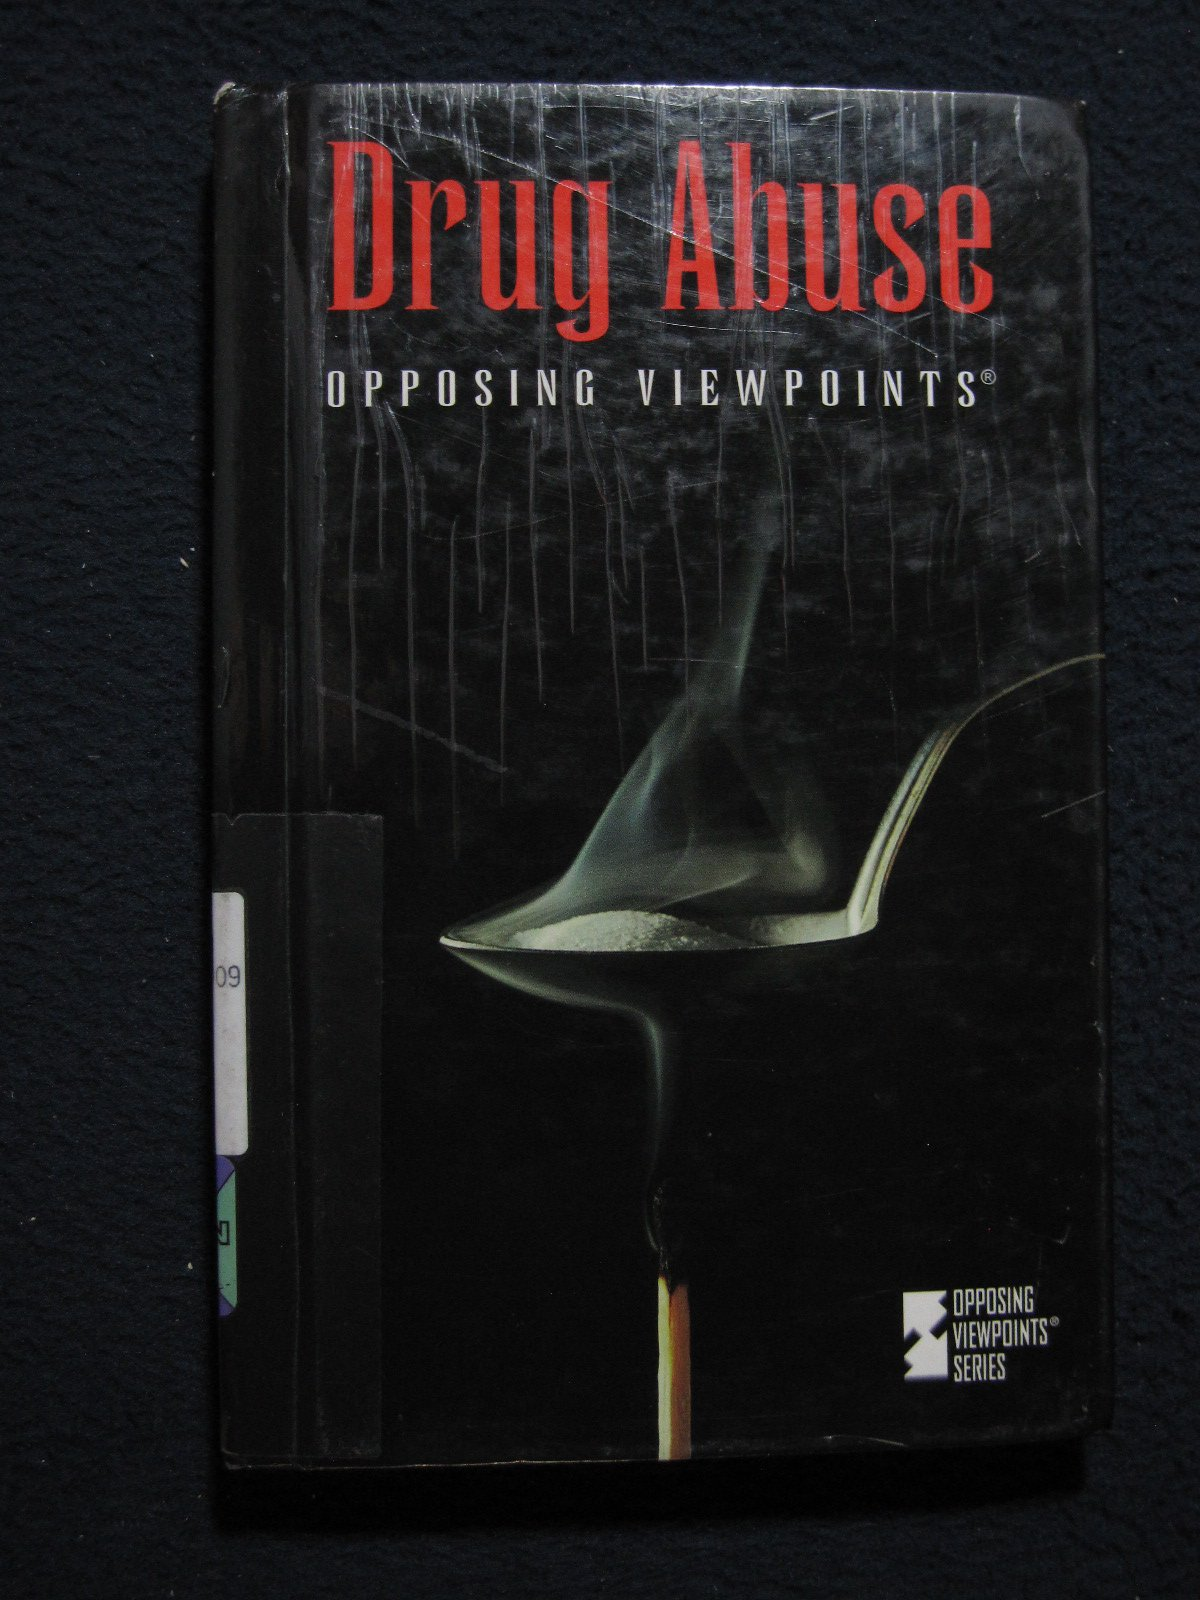 Drug Abuse: Opposing Viewpoints